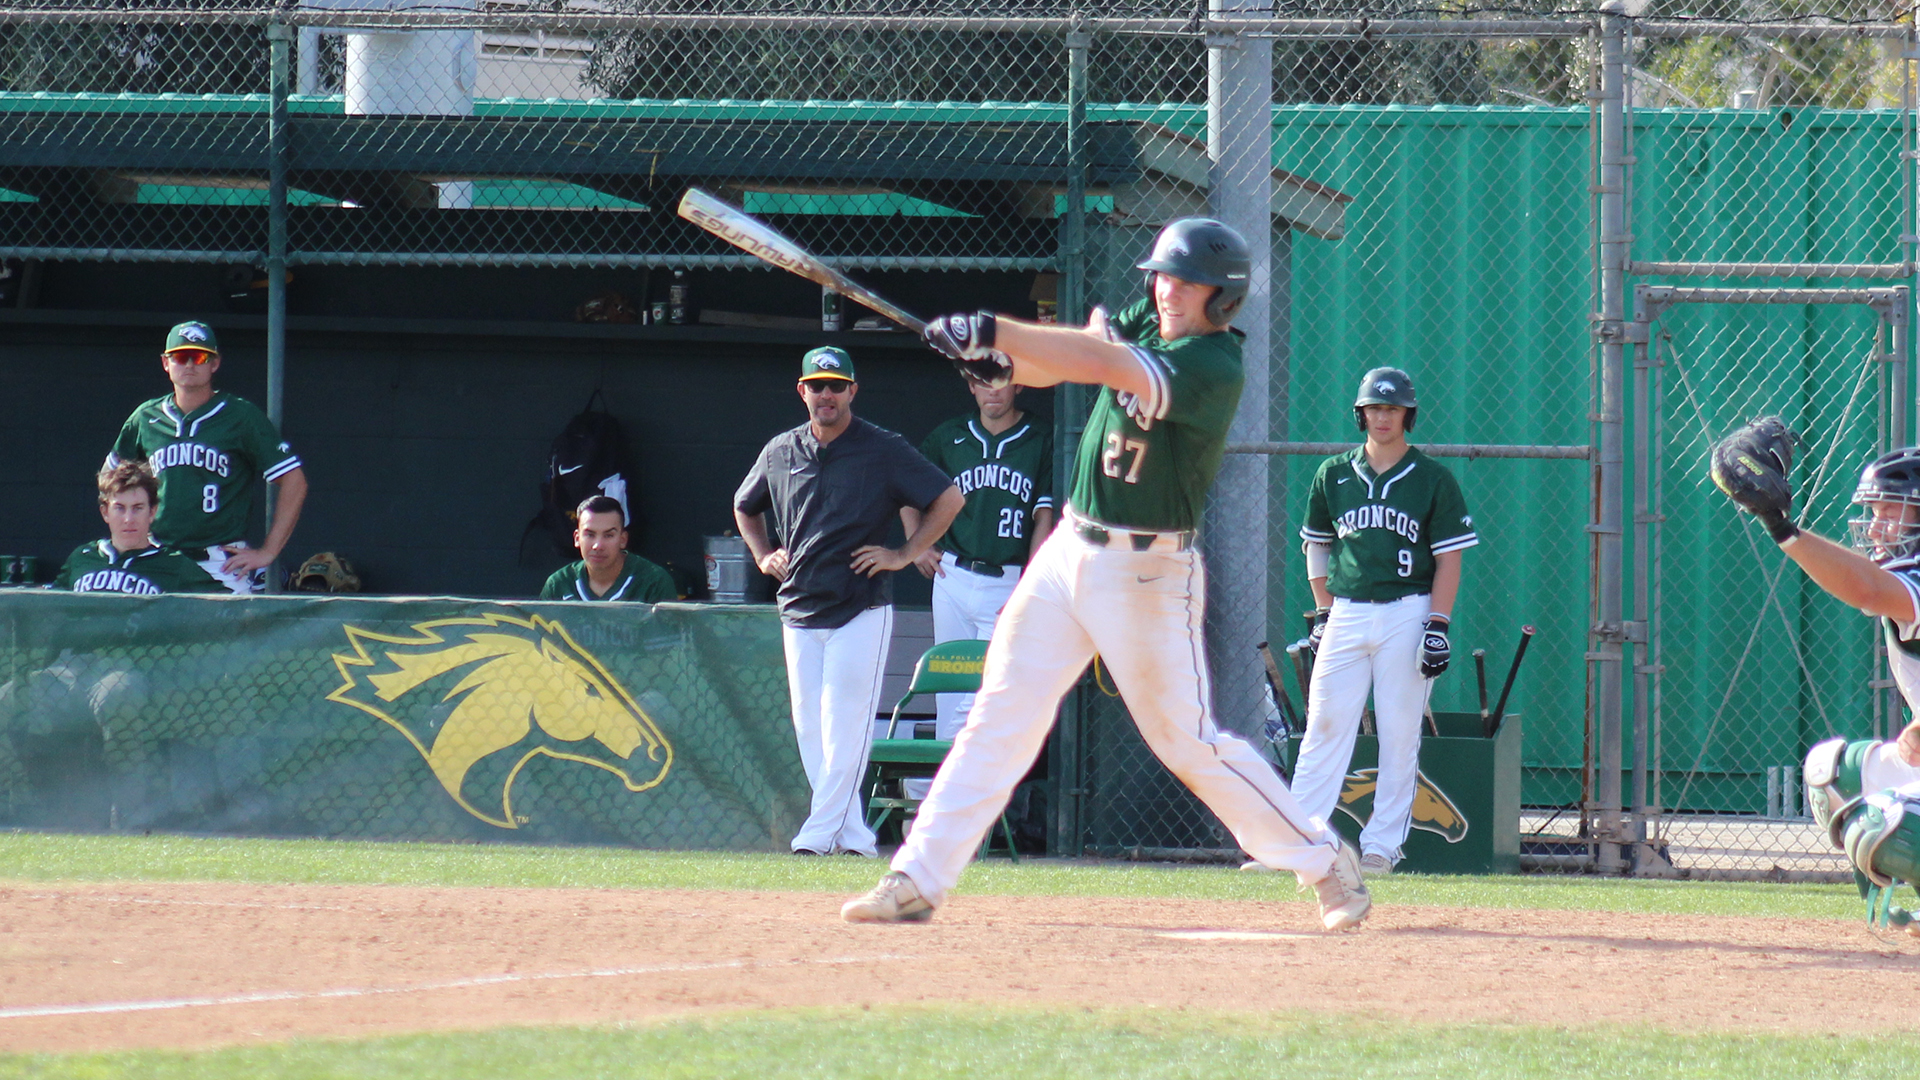 Logan Gopperton - 2019 - Baseball - Cal Poly Pomona Athletics